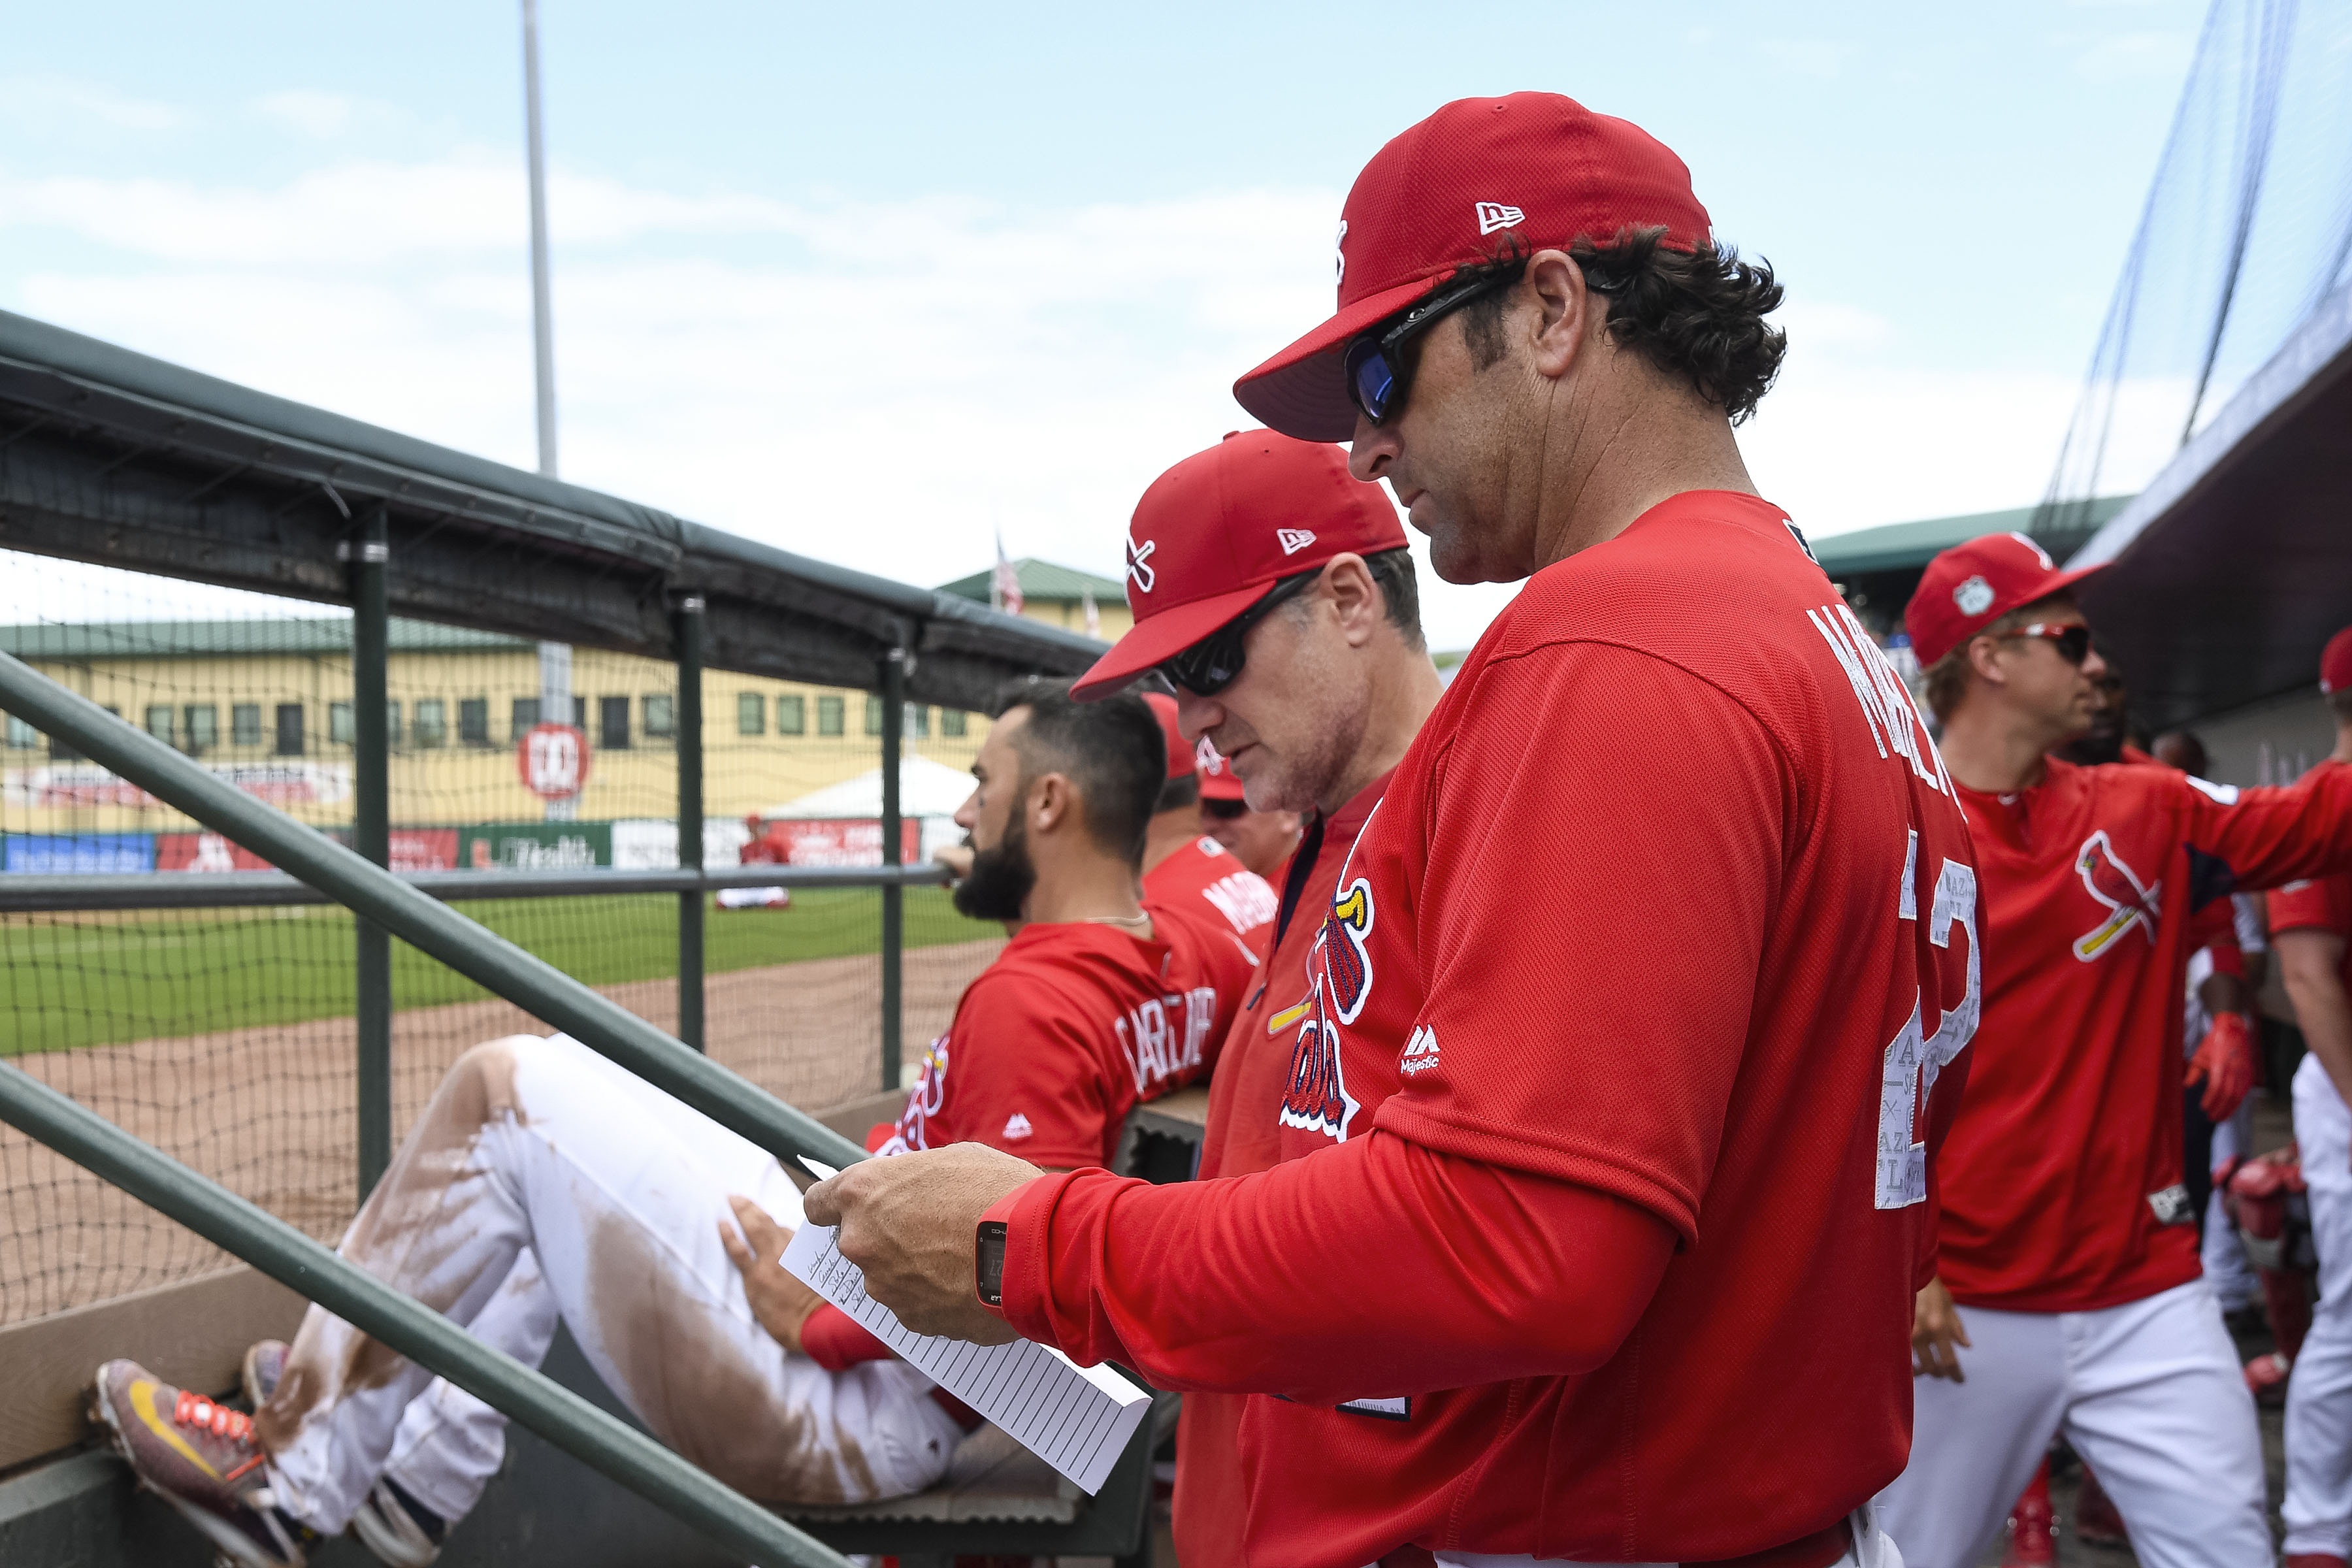 9953196-mlb-spring-training-new-york-mets-at-st.-louis-cardinals